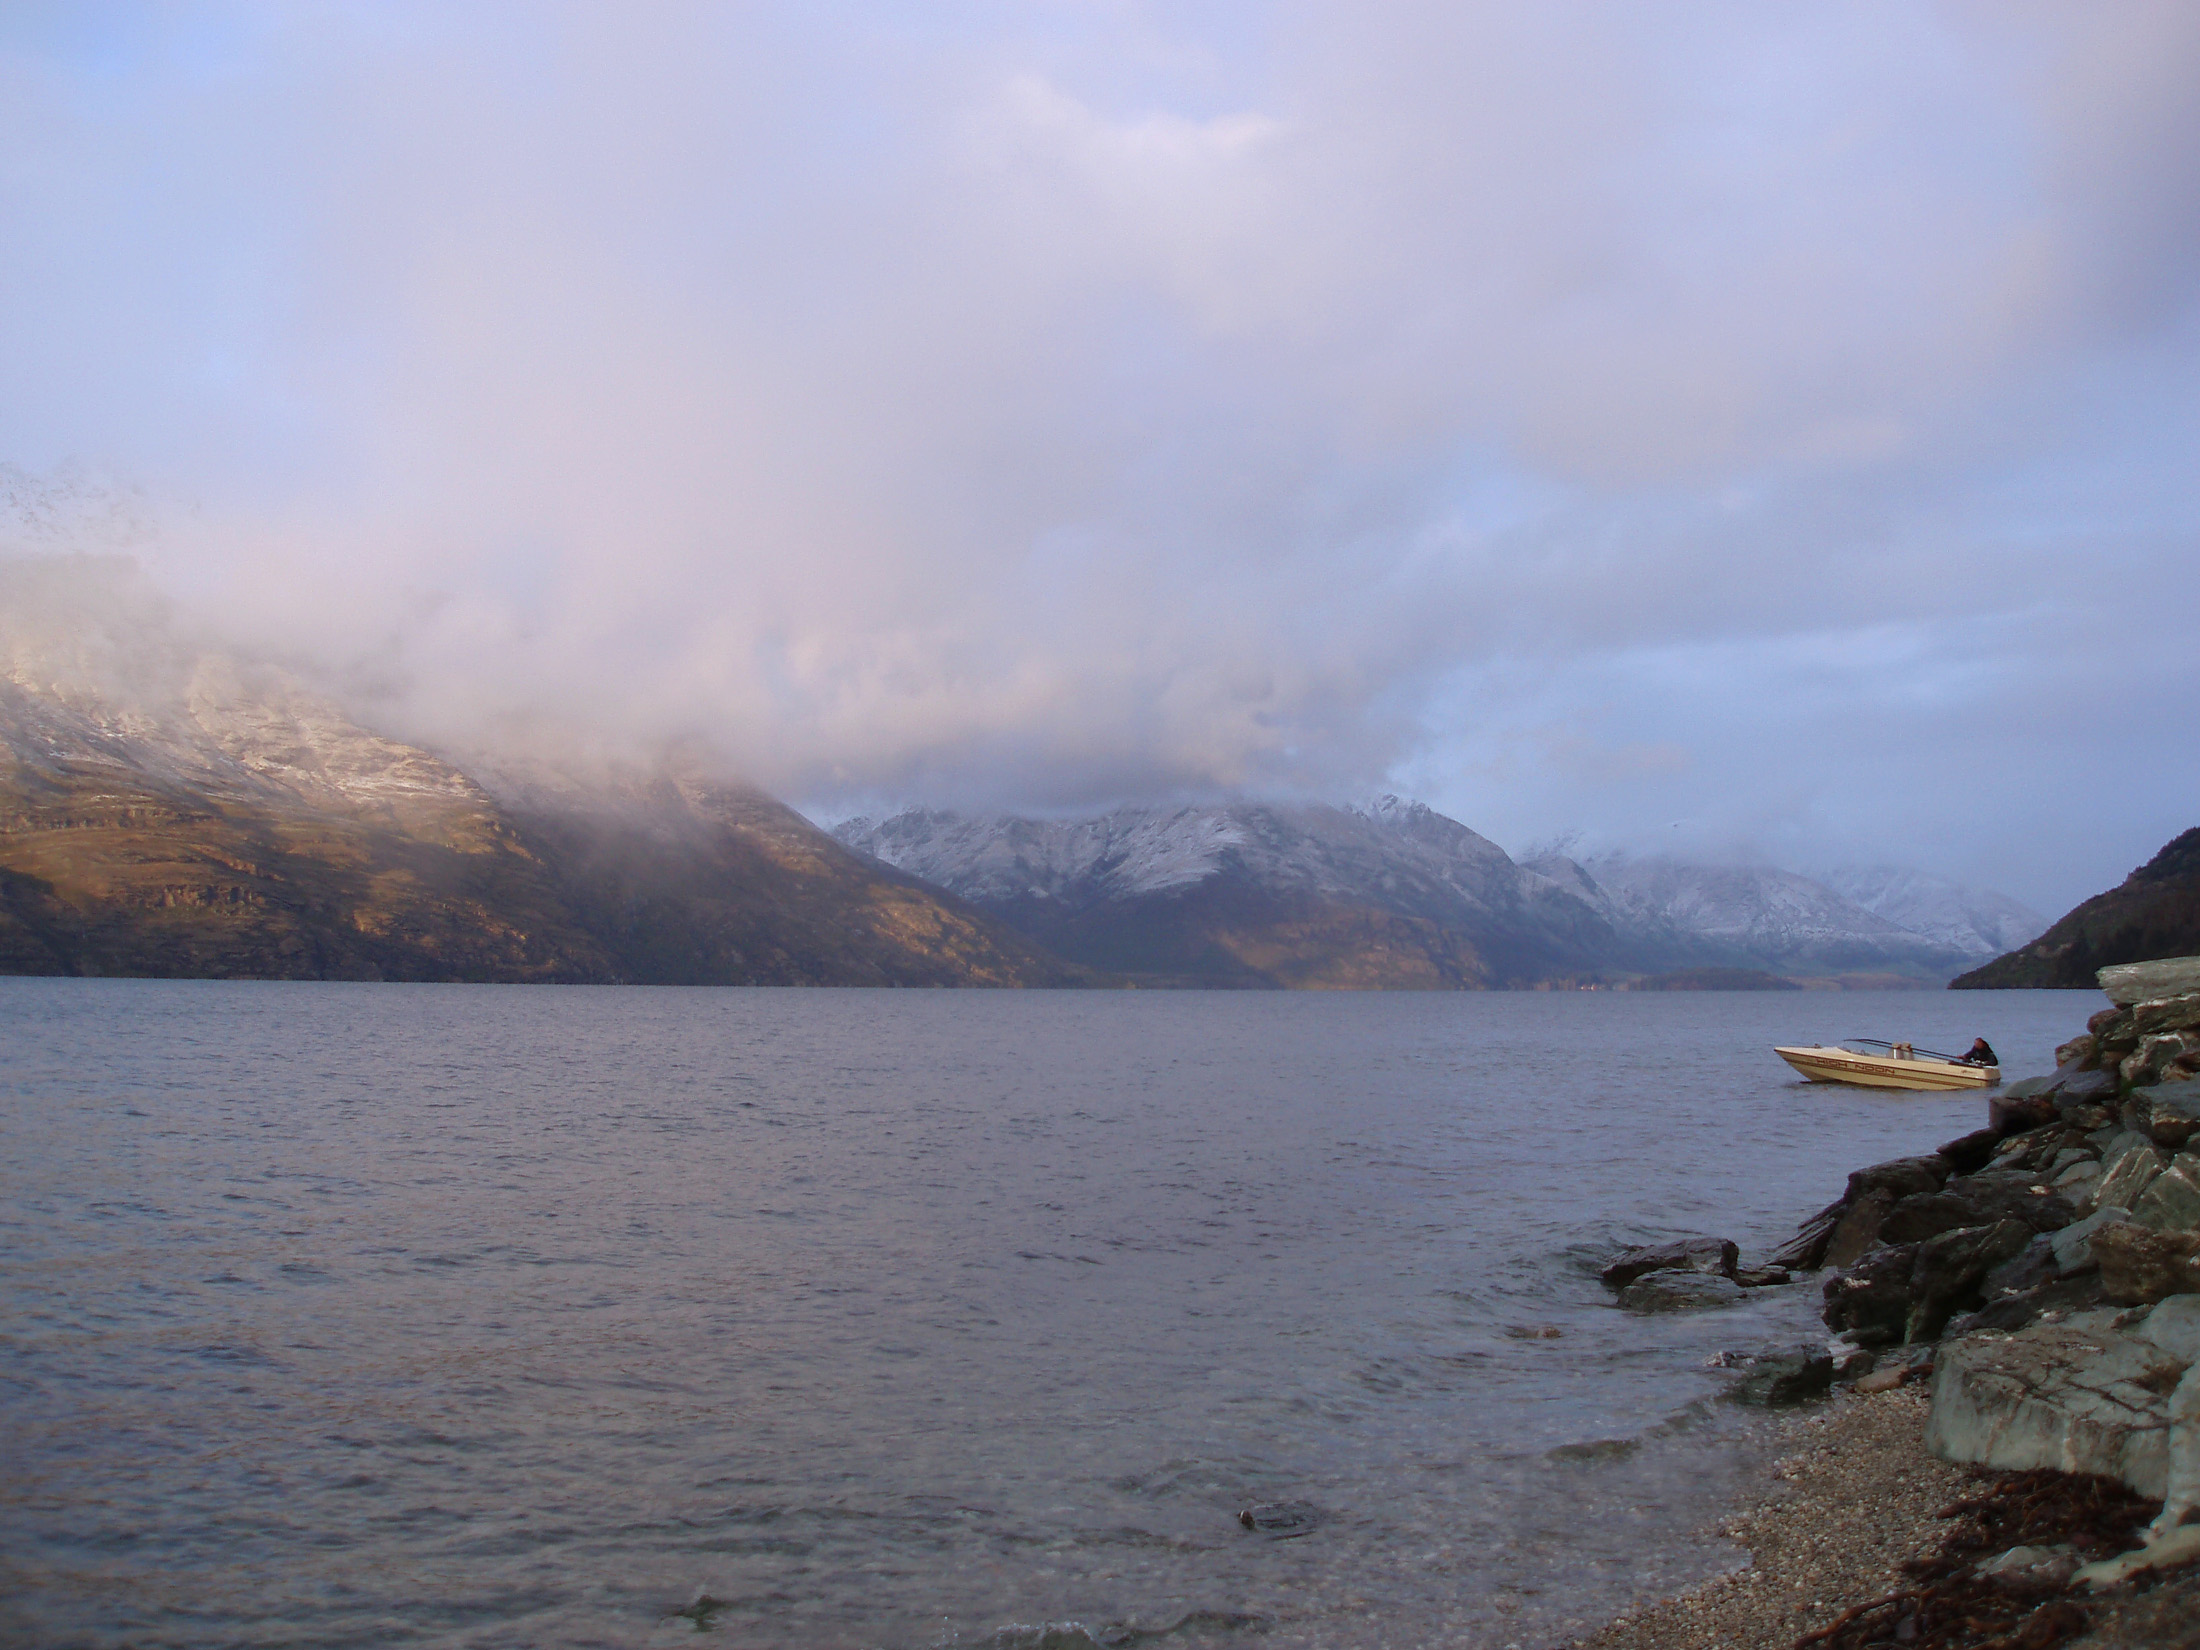 a strom day over lake lake wakatipu, queenstown, new zealand,